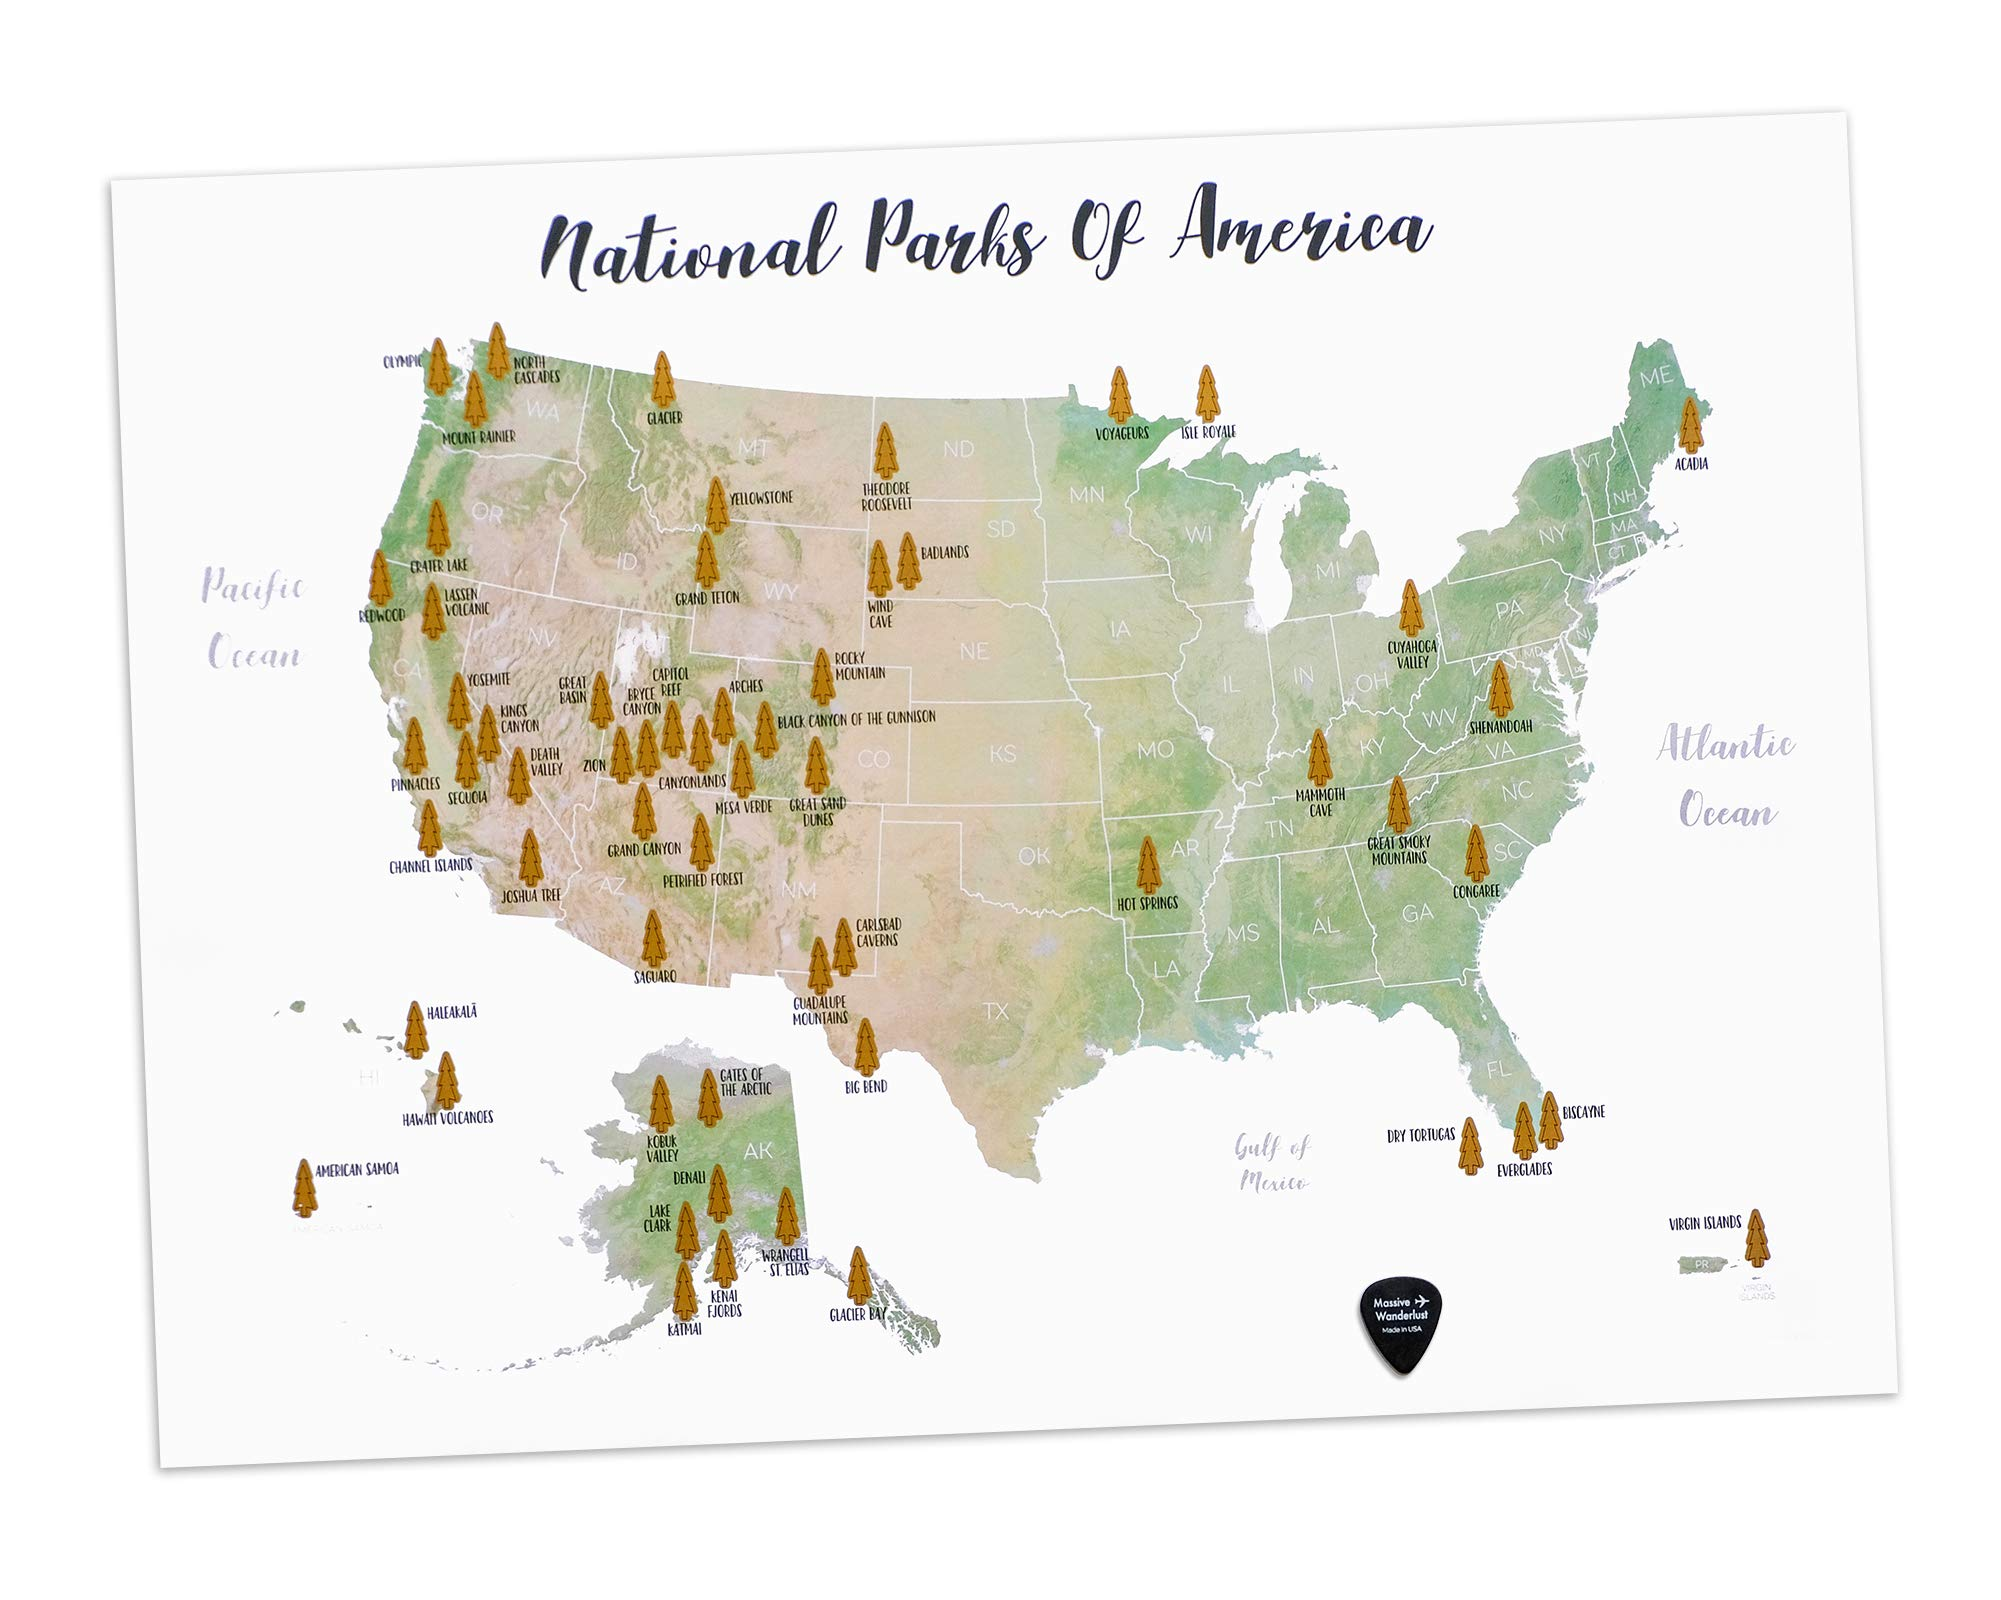 Massive Wanderlust Scratch-Off Your National Parks of America - 100% Made in USA - Large Size 17x23.5 - Gold Scratchable - with Pick and Unique Gift Sticker for Travelers